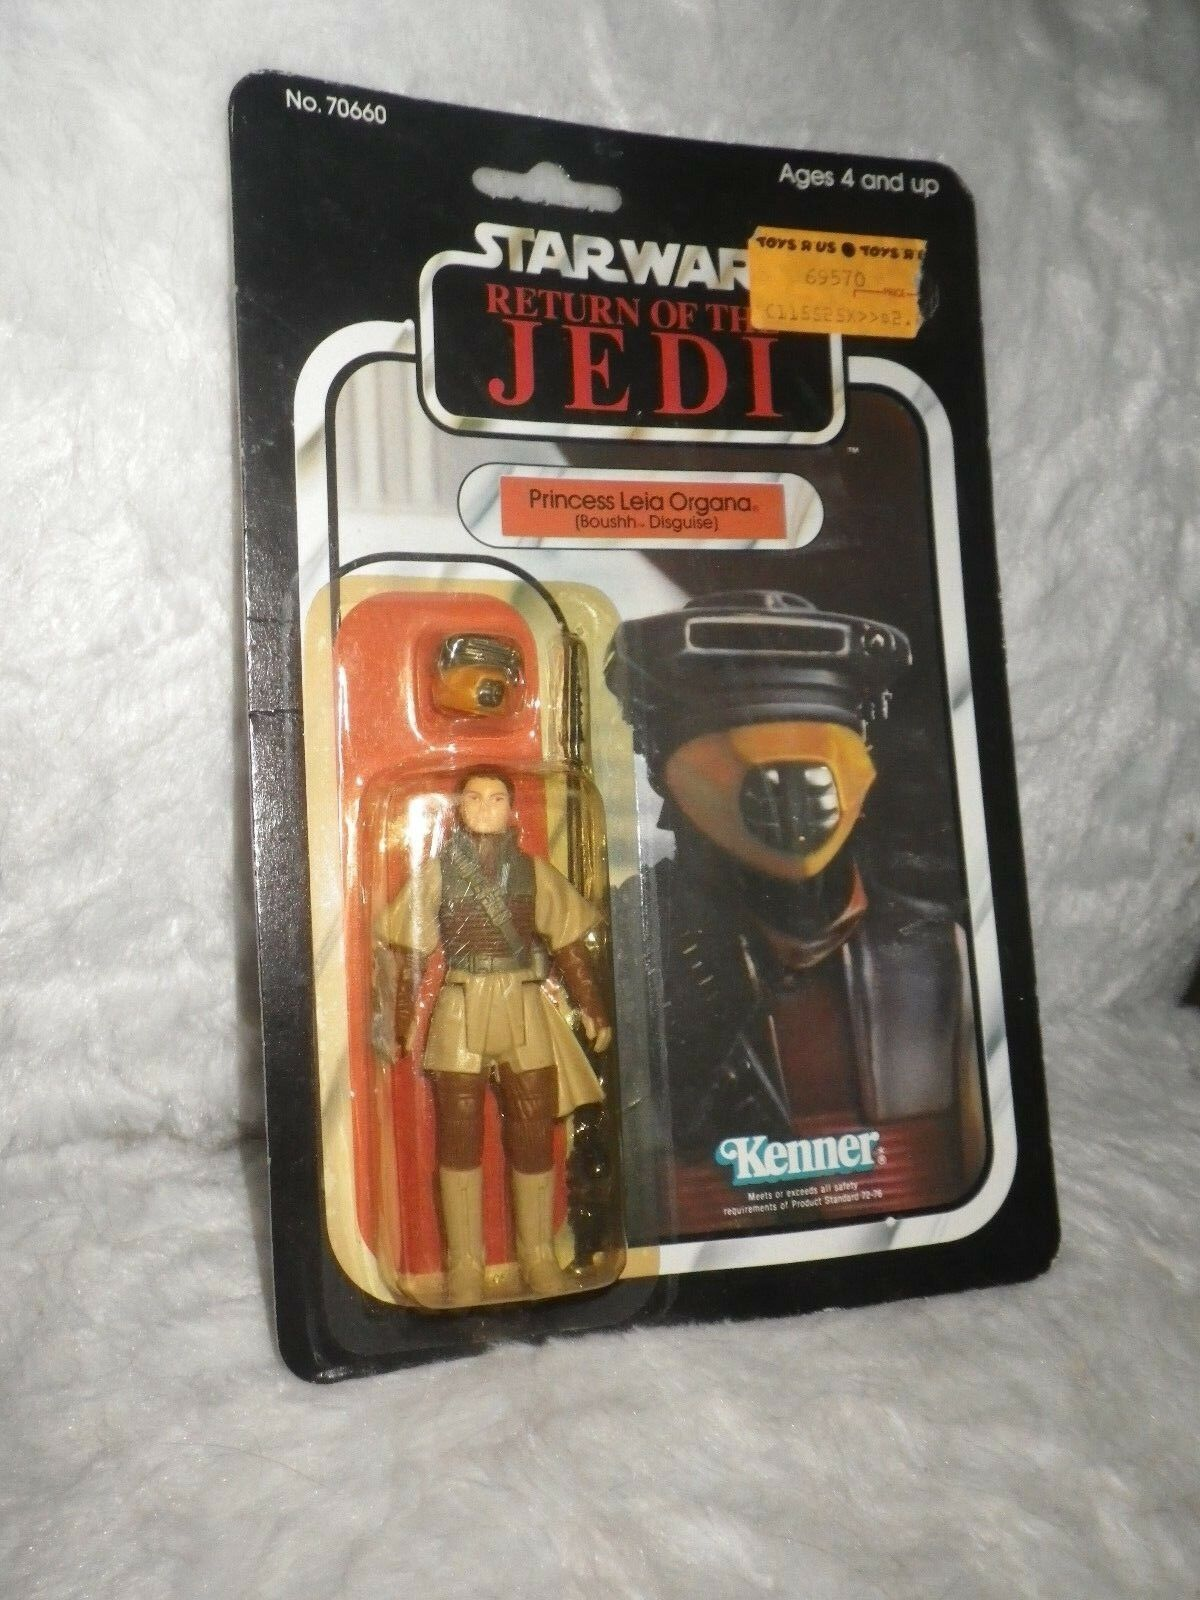 NEW Star Wars THE RETURN OF THE THE THE JEDI PRINCESS LEIA ORGANA BOUSSH DISGUISE 77 6cb080